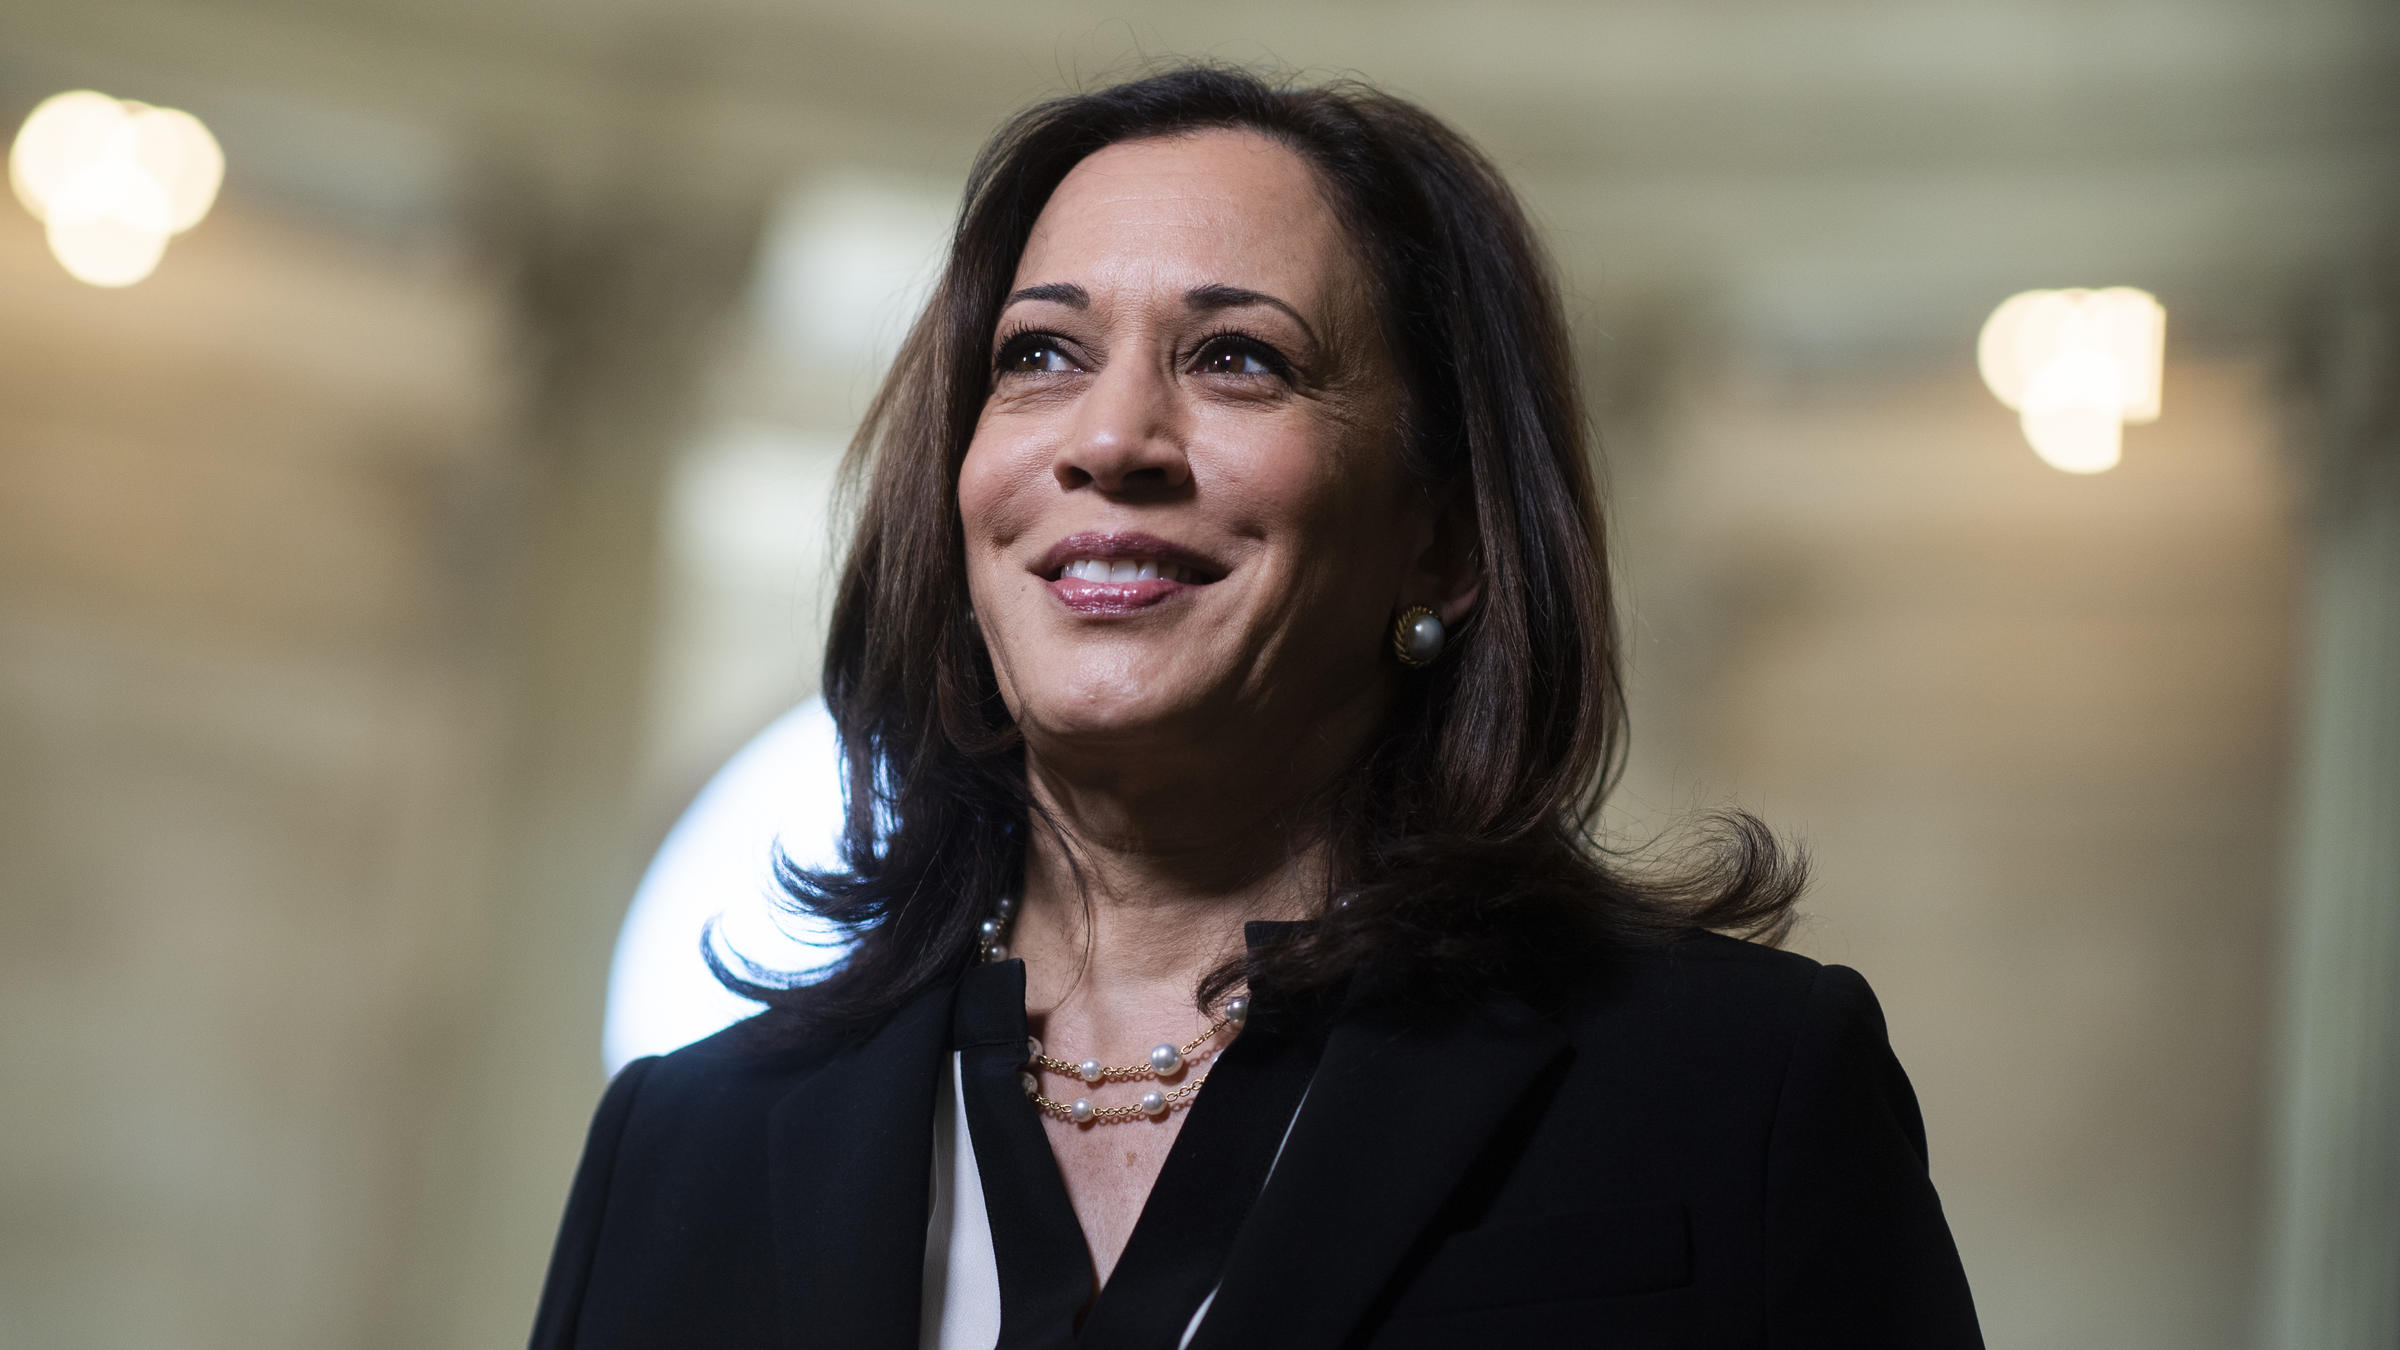 Kamala Harris Pick For Vp Is Hailed As A Moment Of Pride In India 90 5 Wesa